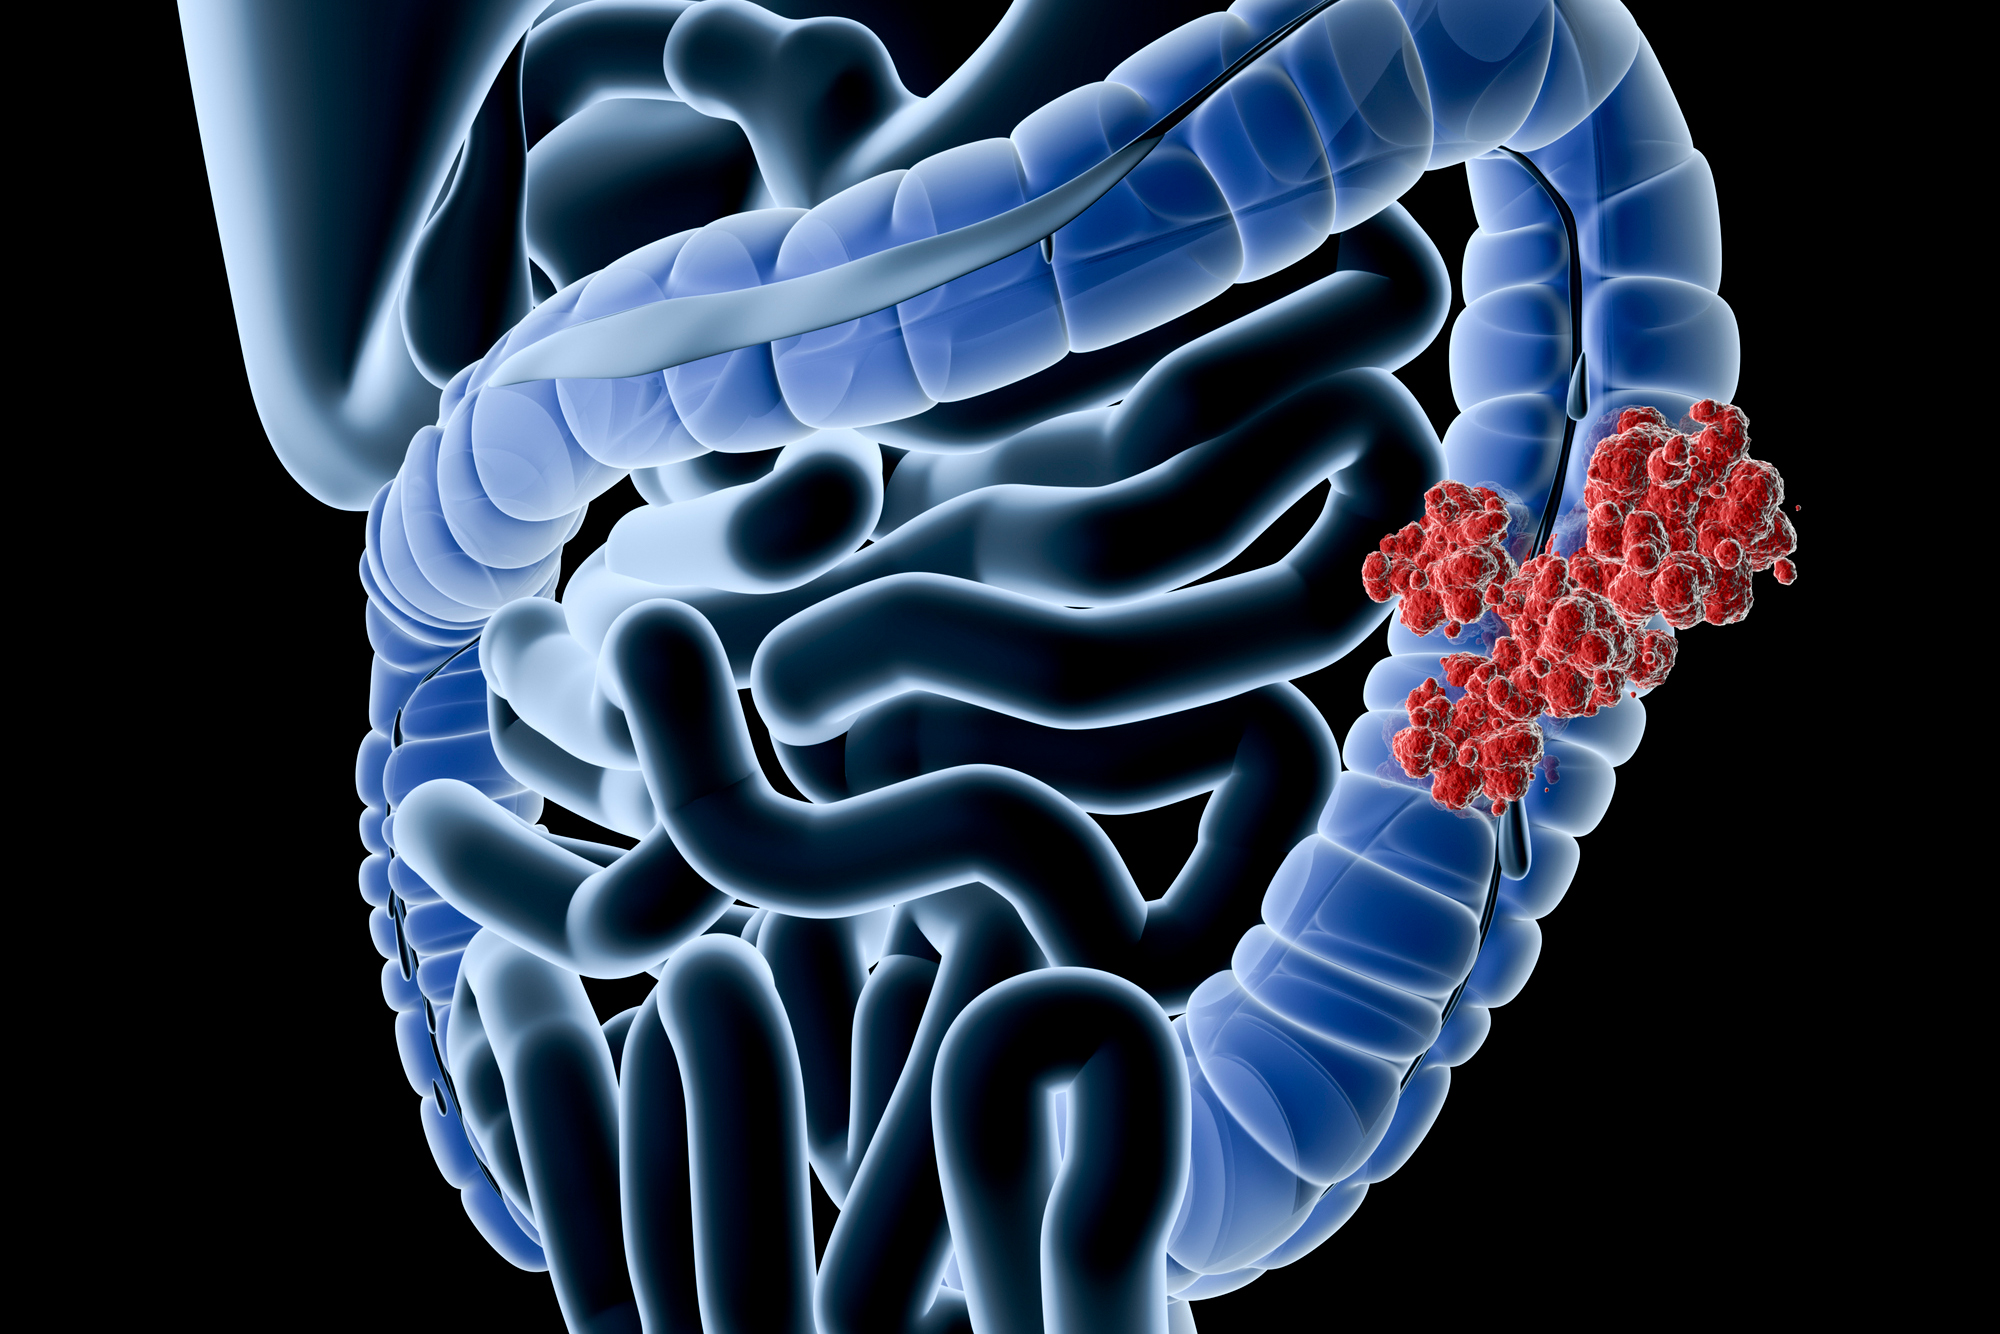 Illustration of an X-ray view of a human colon with tumor. (Getty Images)